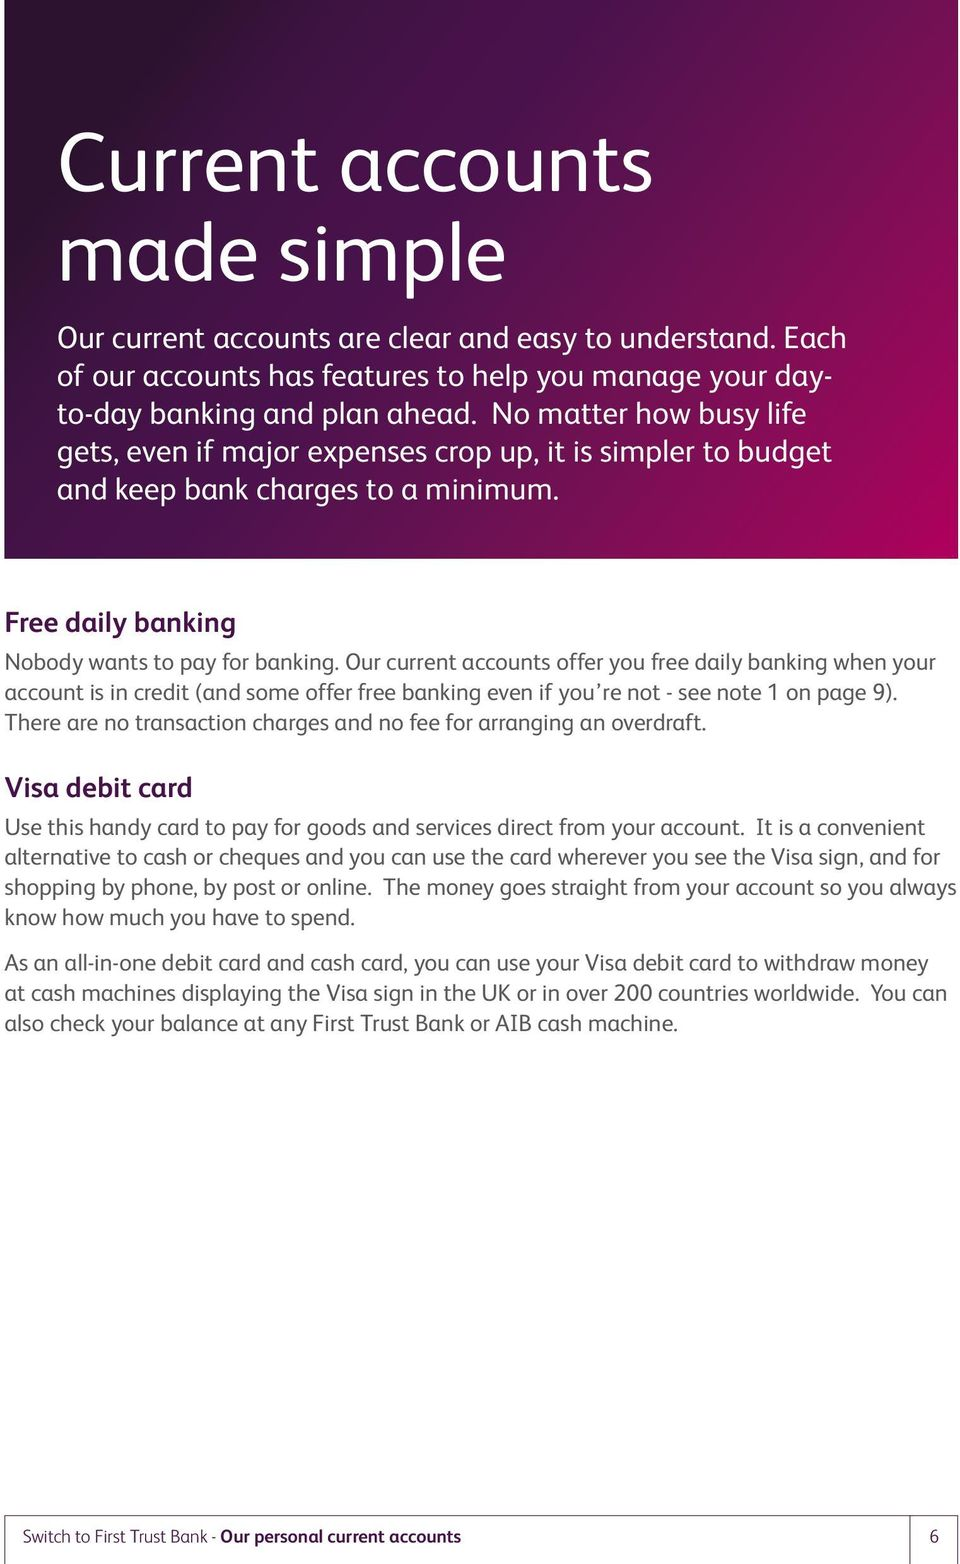 Our current accounts offer you free daily banking when your account is in credit (and some offer free banking even if you re not - see note 1 on page 9).